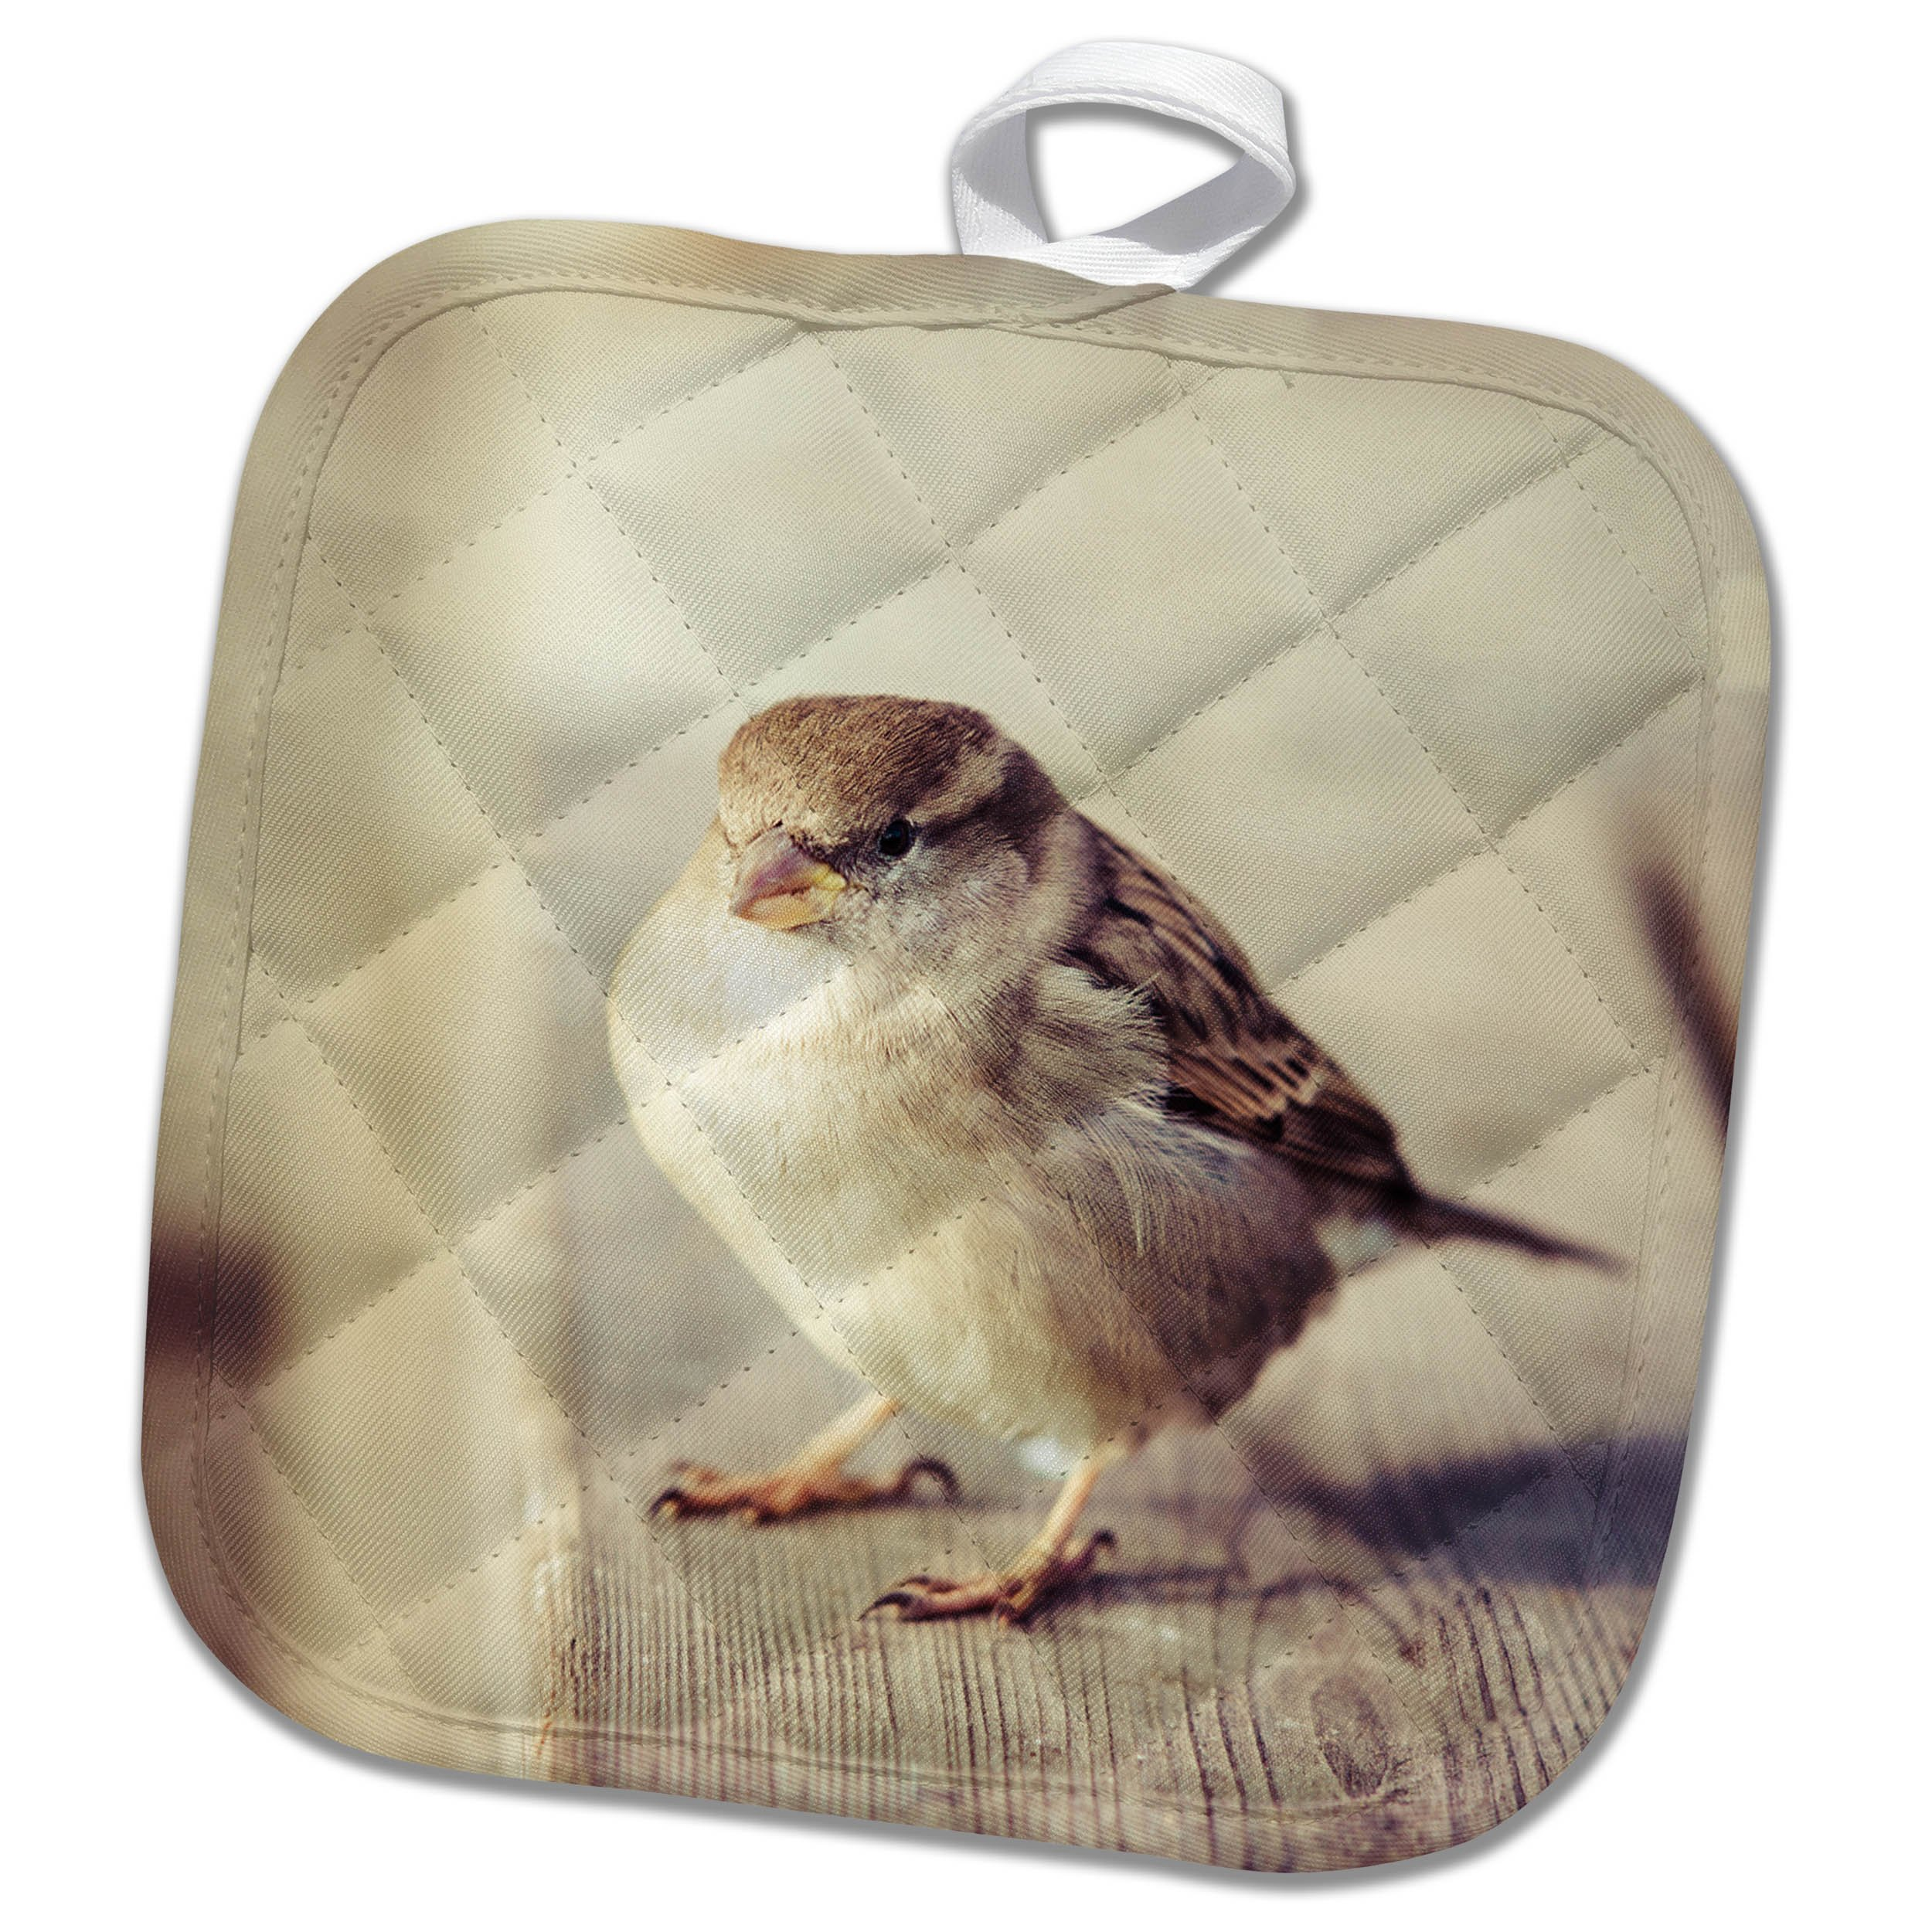 3dRose Alexis Photography - Birds - Calm sparrow looks at you with interest - 8x8 Potholder (phl_270249_1)